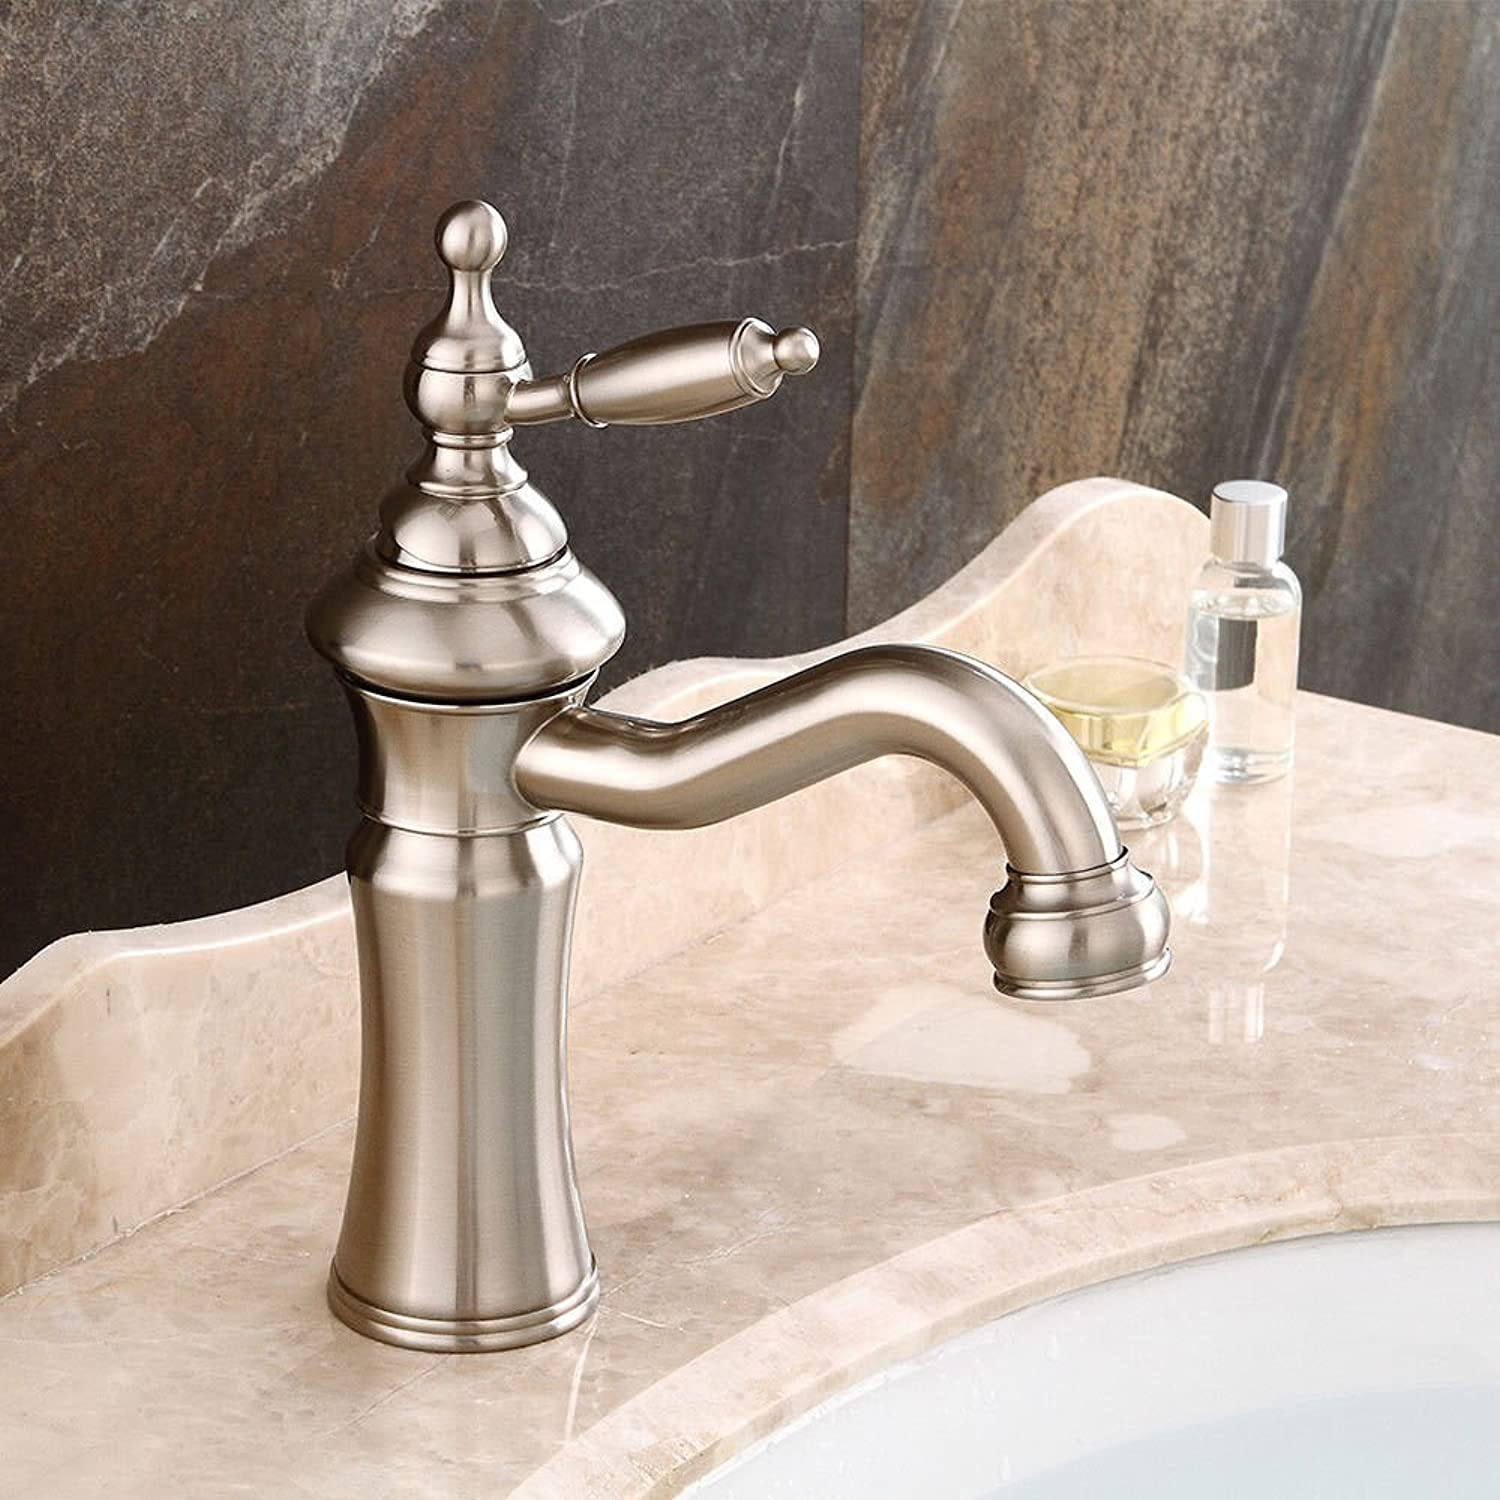 AQMMi Bathroom Sink Mixer Tap Brushed Retro Hot and Cold Water Swivel Taps for Bathroom Sink